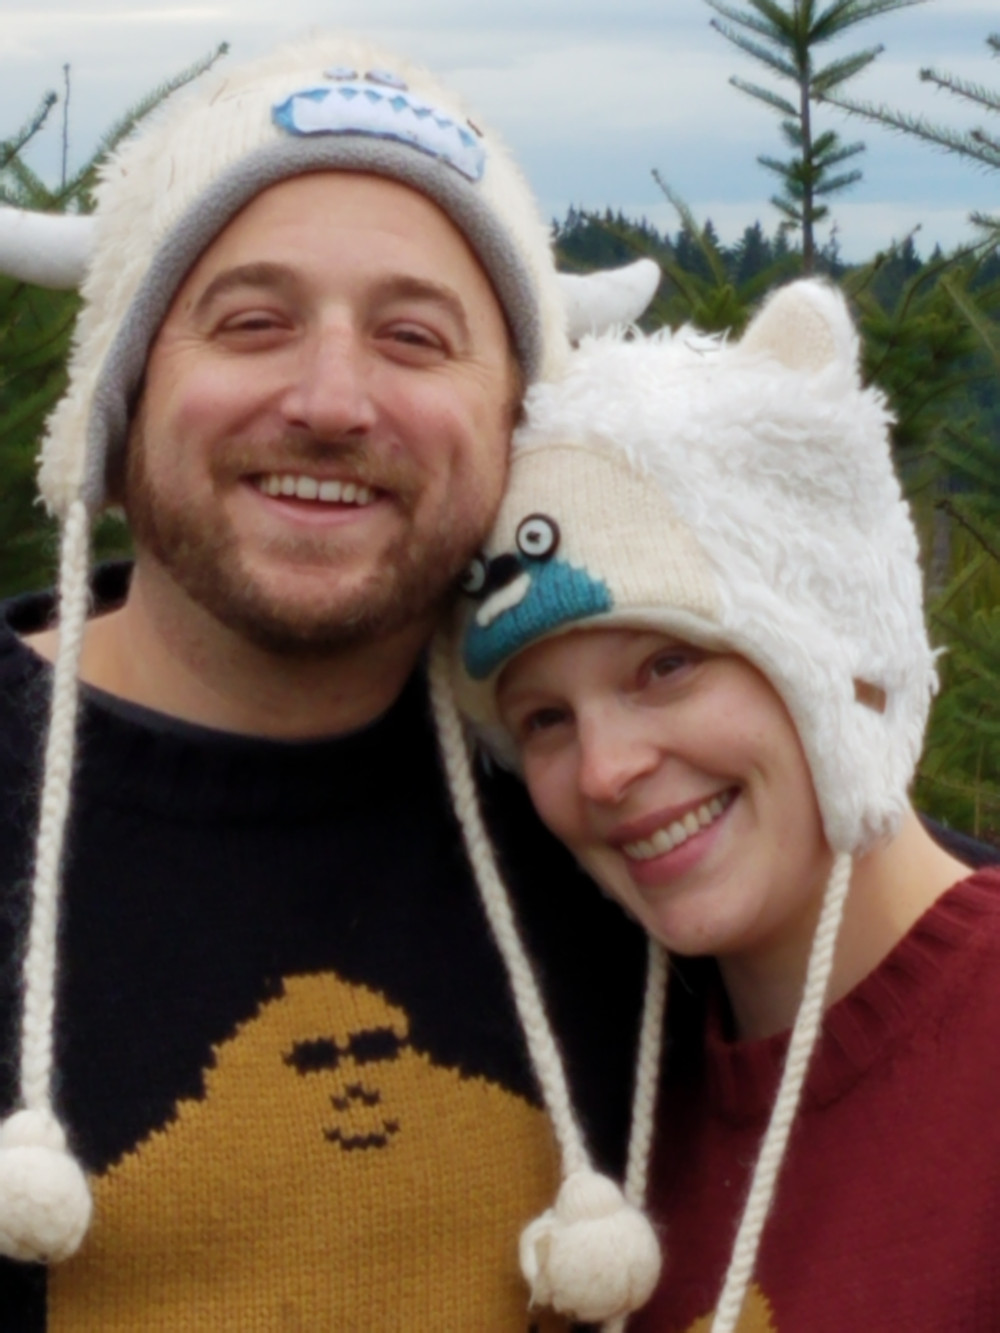 Owyn and wife wearing yeti winter hats and yeti sweaters.